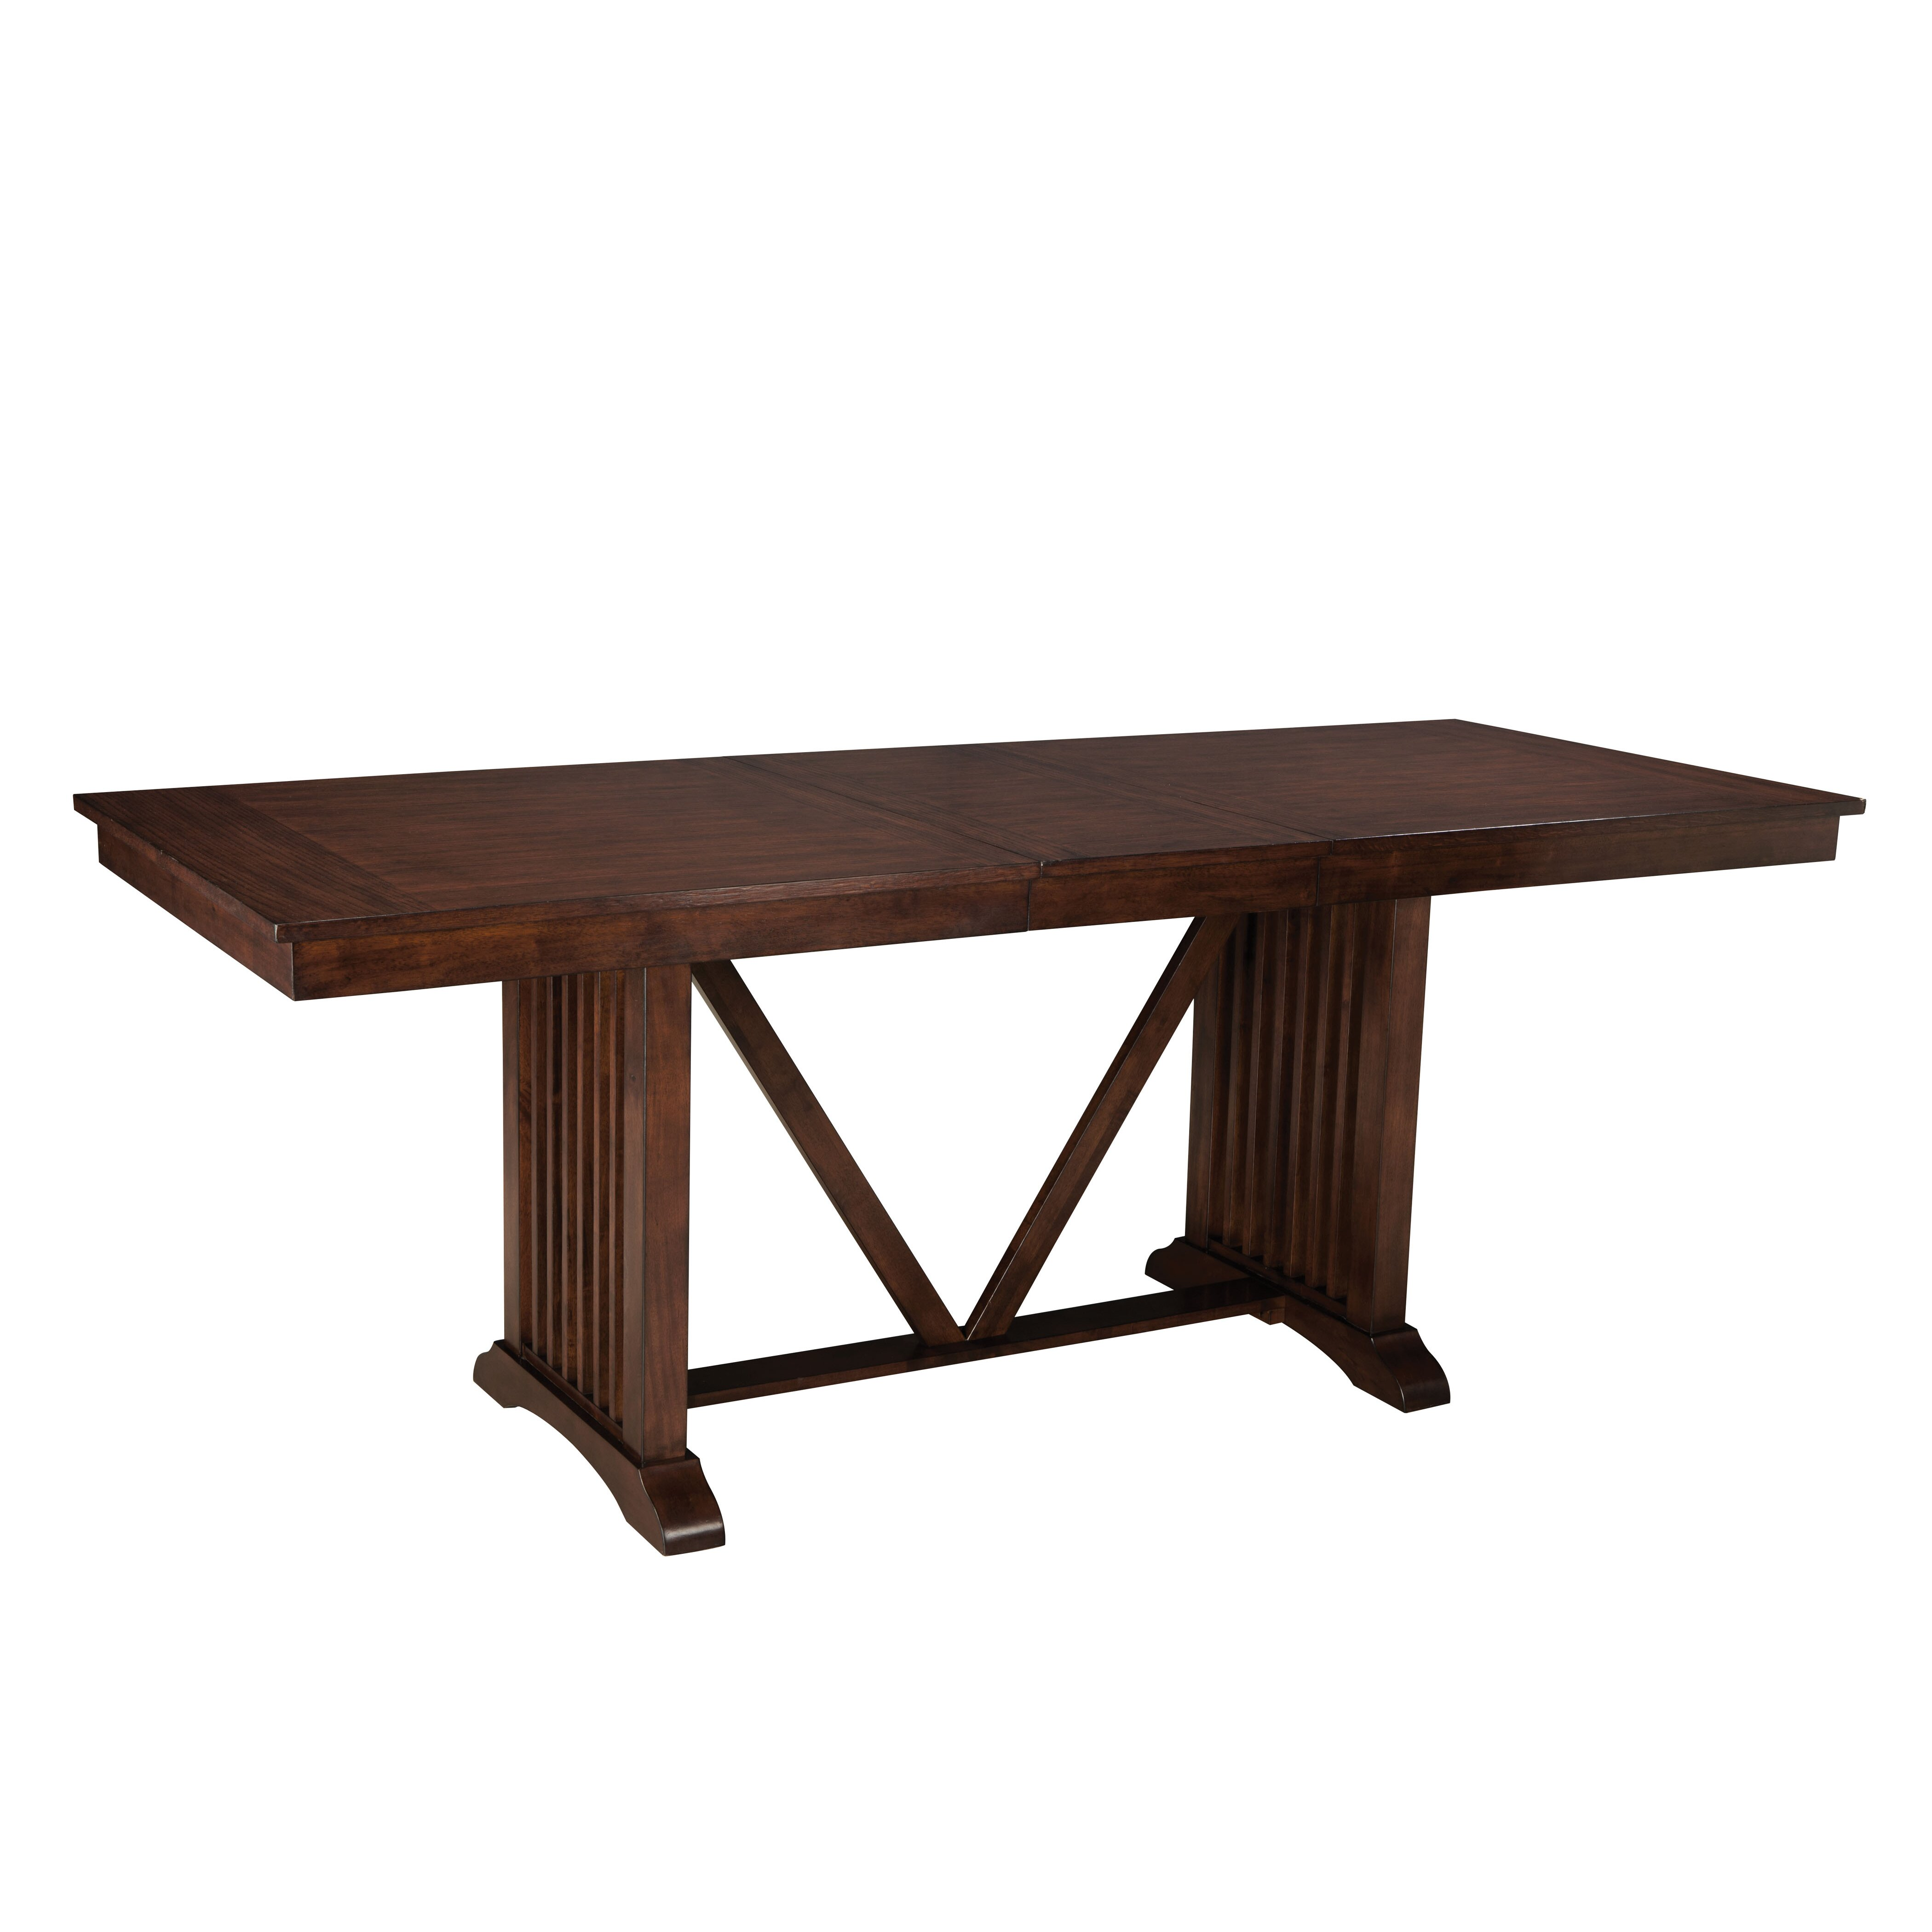 Standard furniture artisan loft counter height table for Table standard